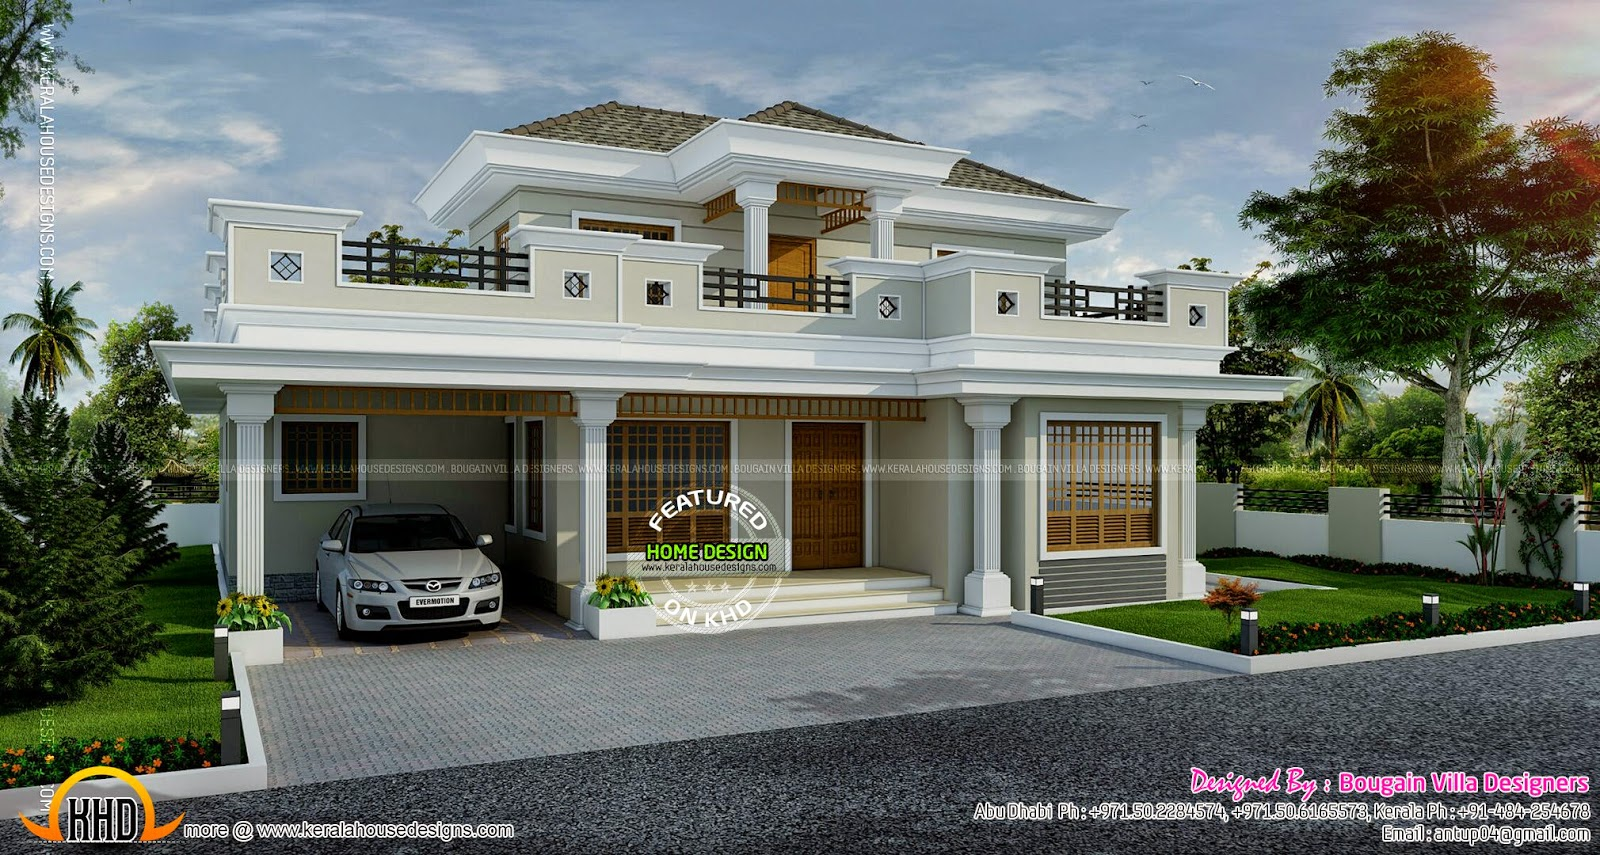 Stylish house exterior kerala home design and floor plans for One level house exterior design